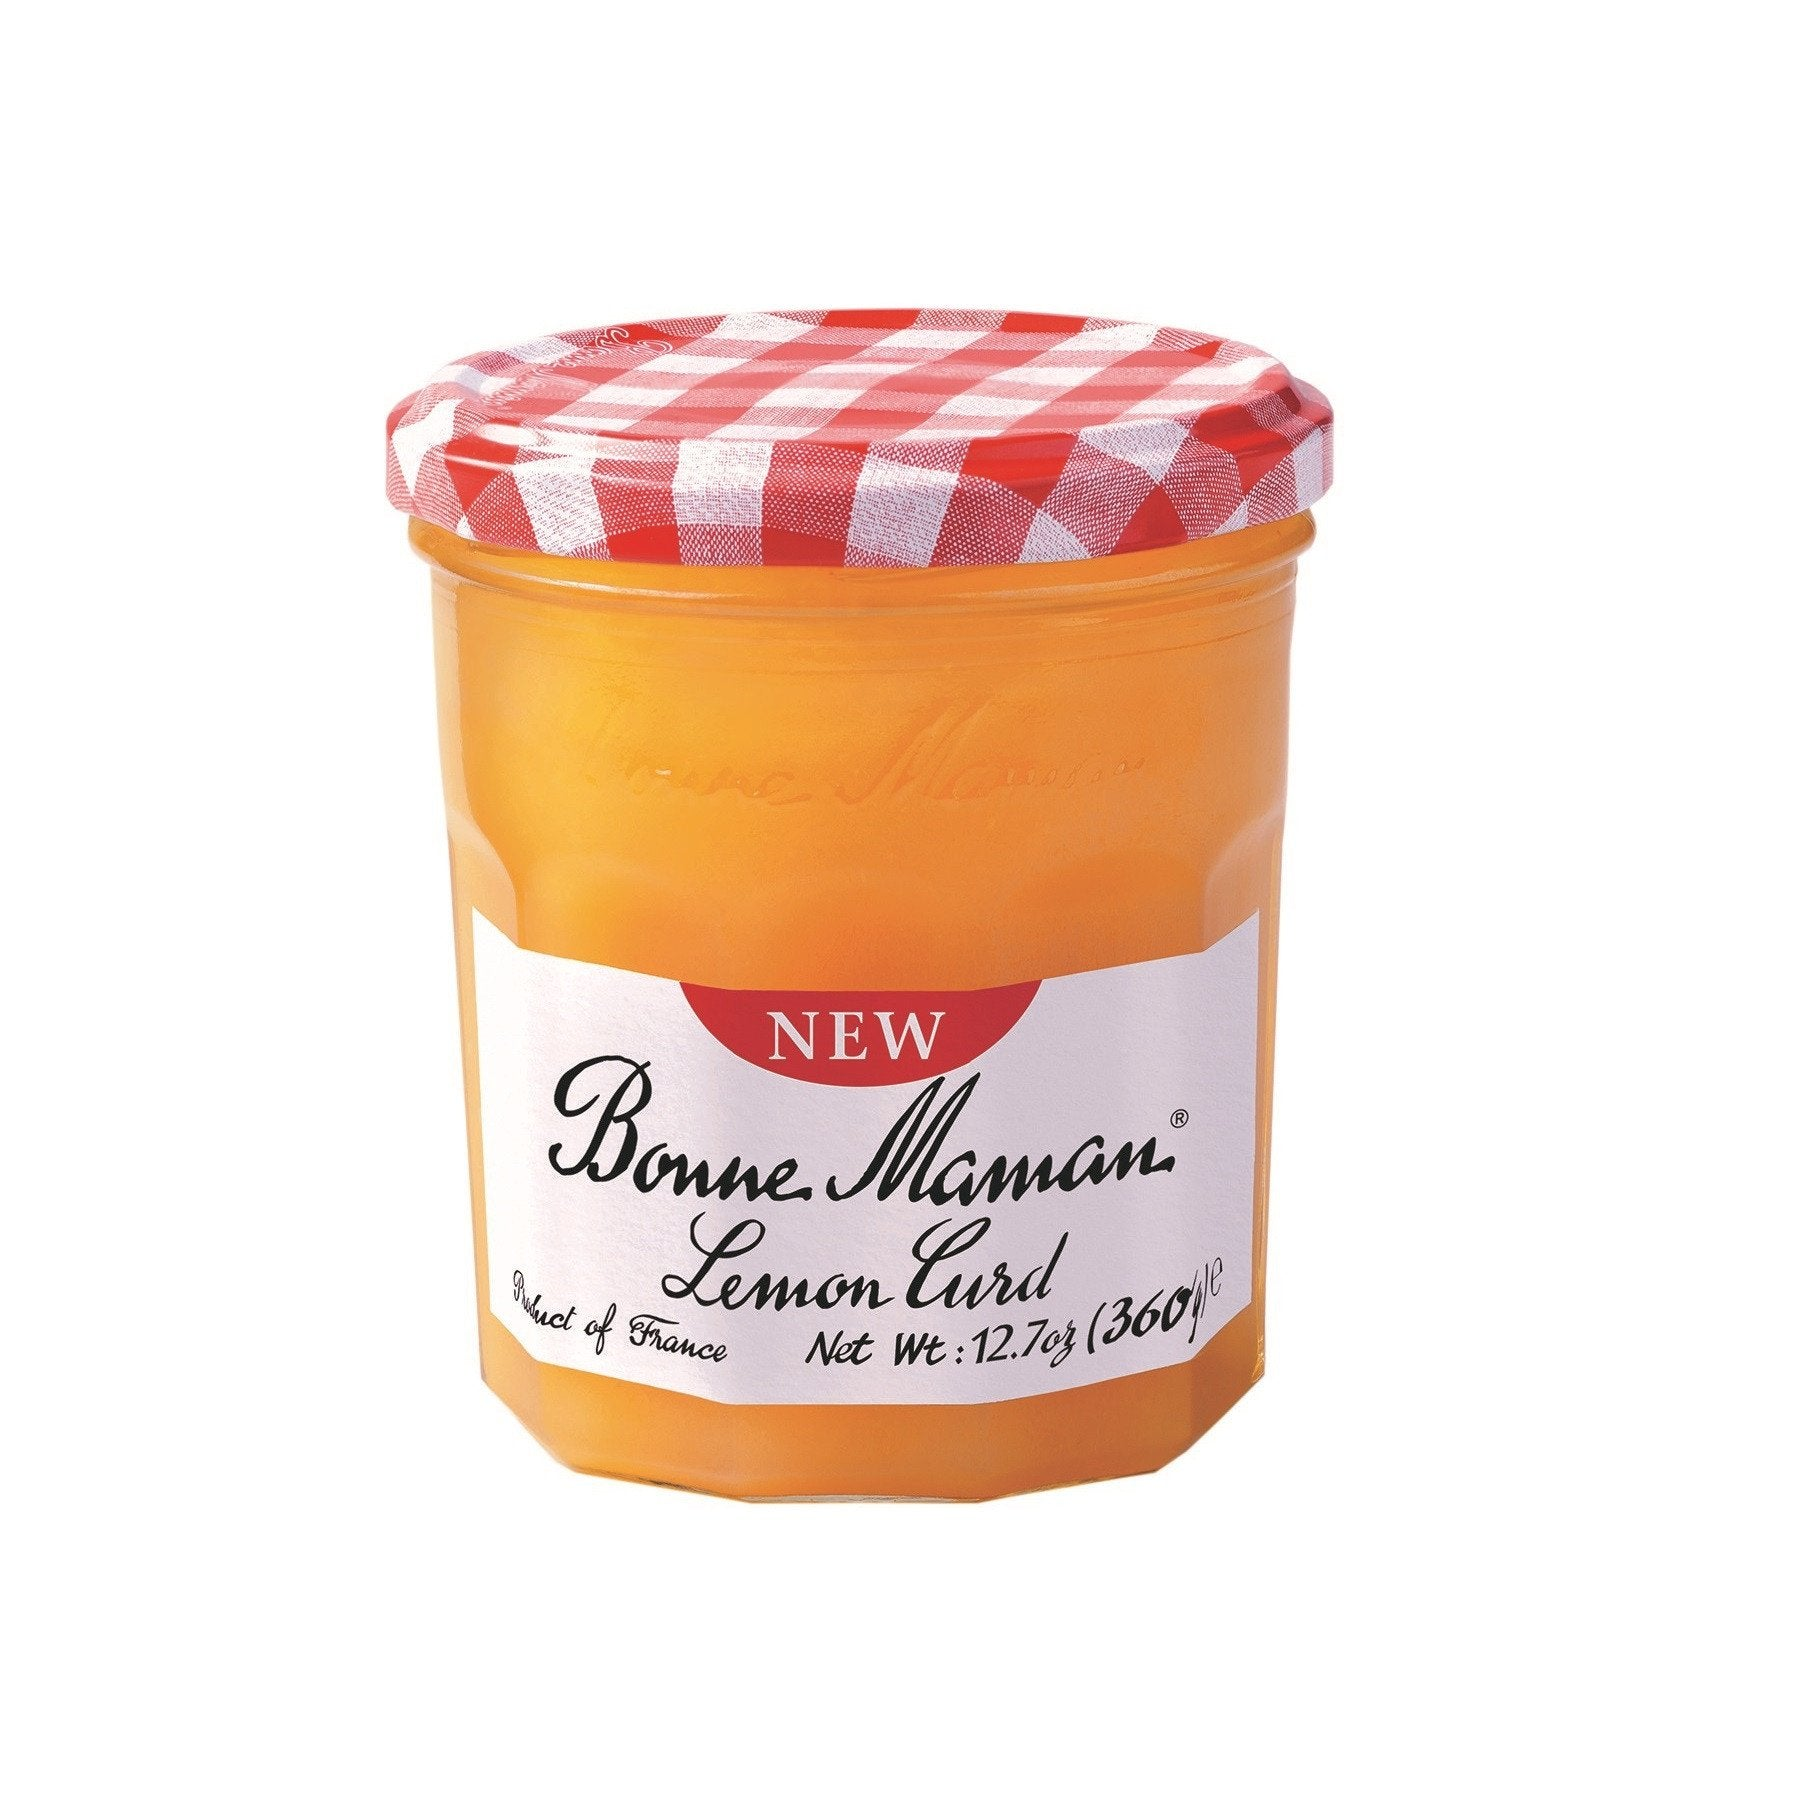 Bonne Maman Lemon Curd Spread, 12.7 Oz (Pack of 6)